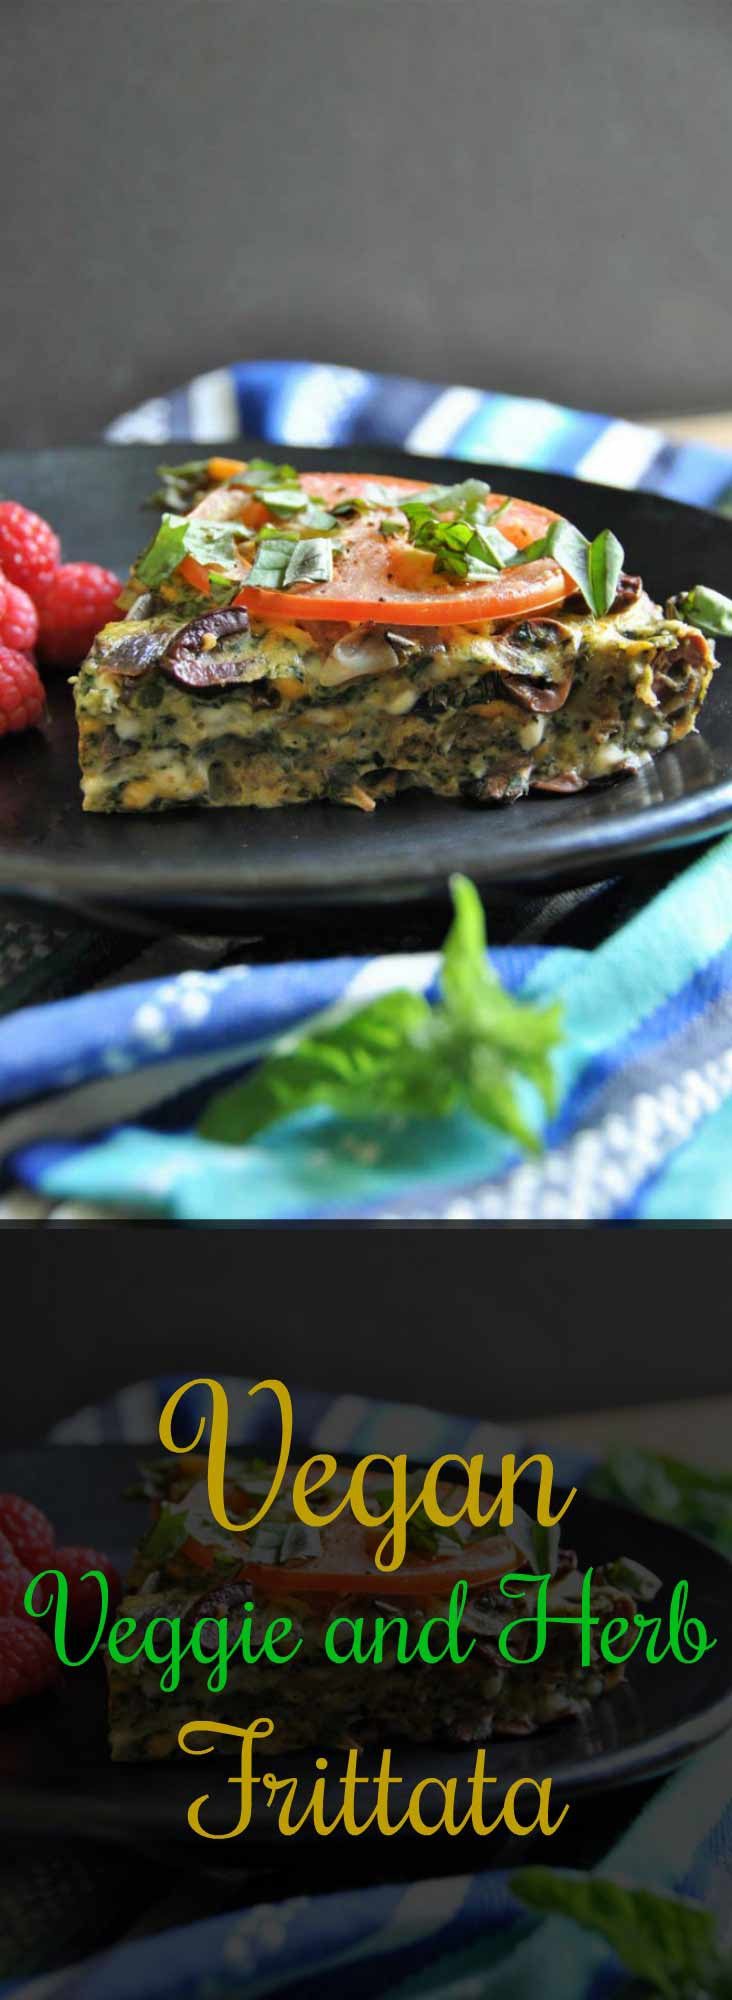 Vegan vegetable and herb frittata for breakfast, lunch, or dinner!